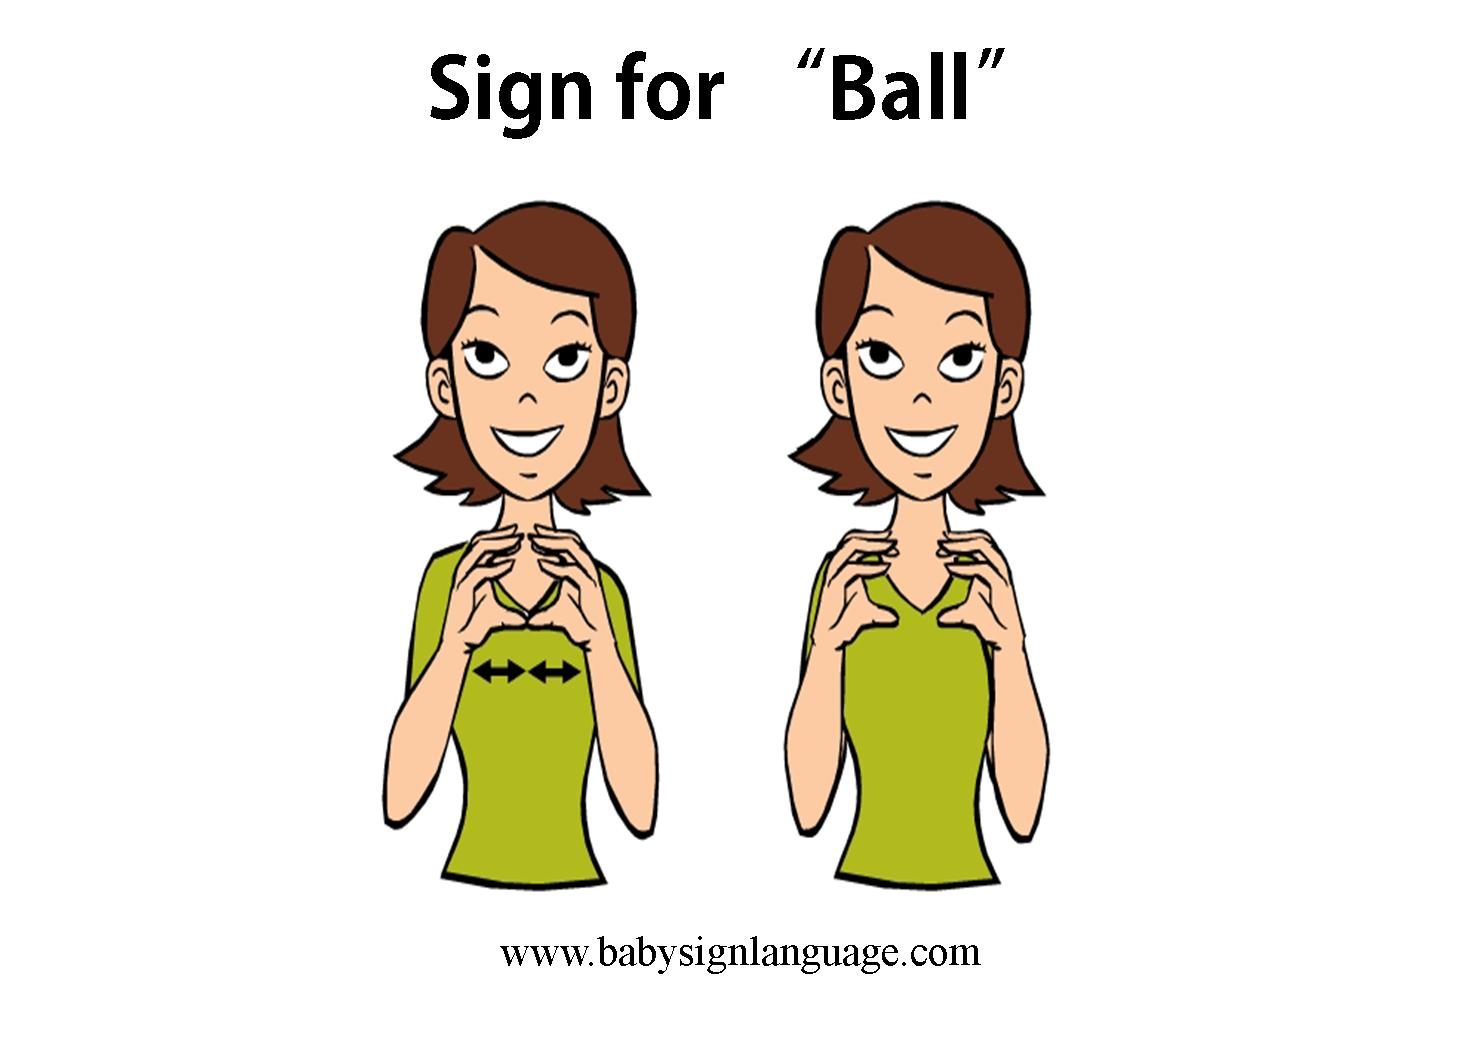 Sign Language Top 10 Beginner Signs Every Child Should